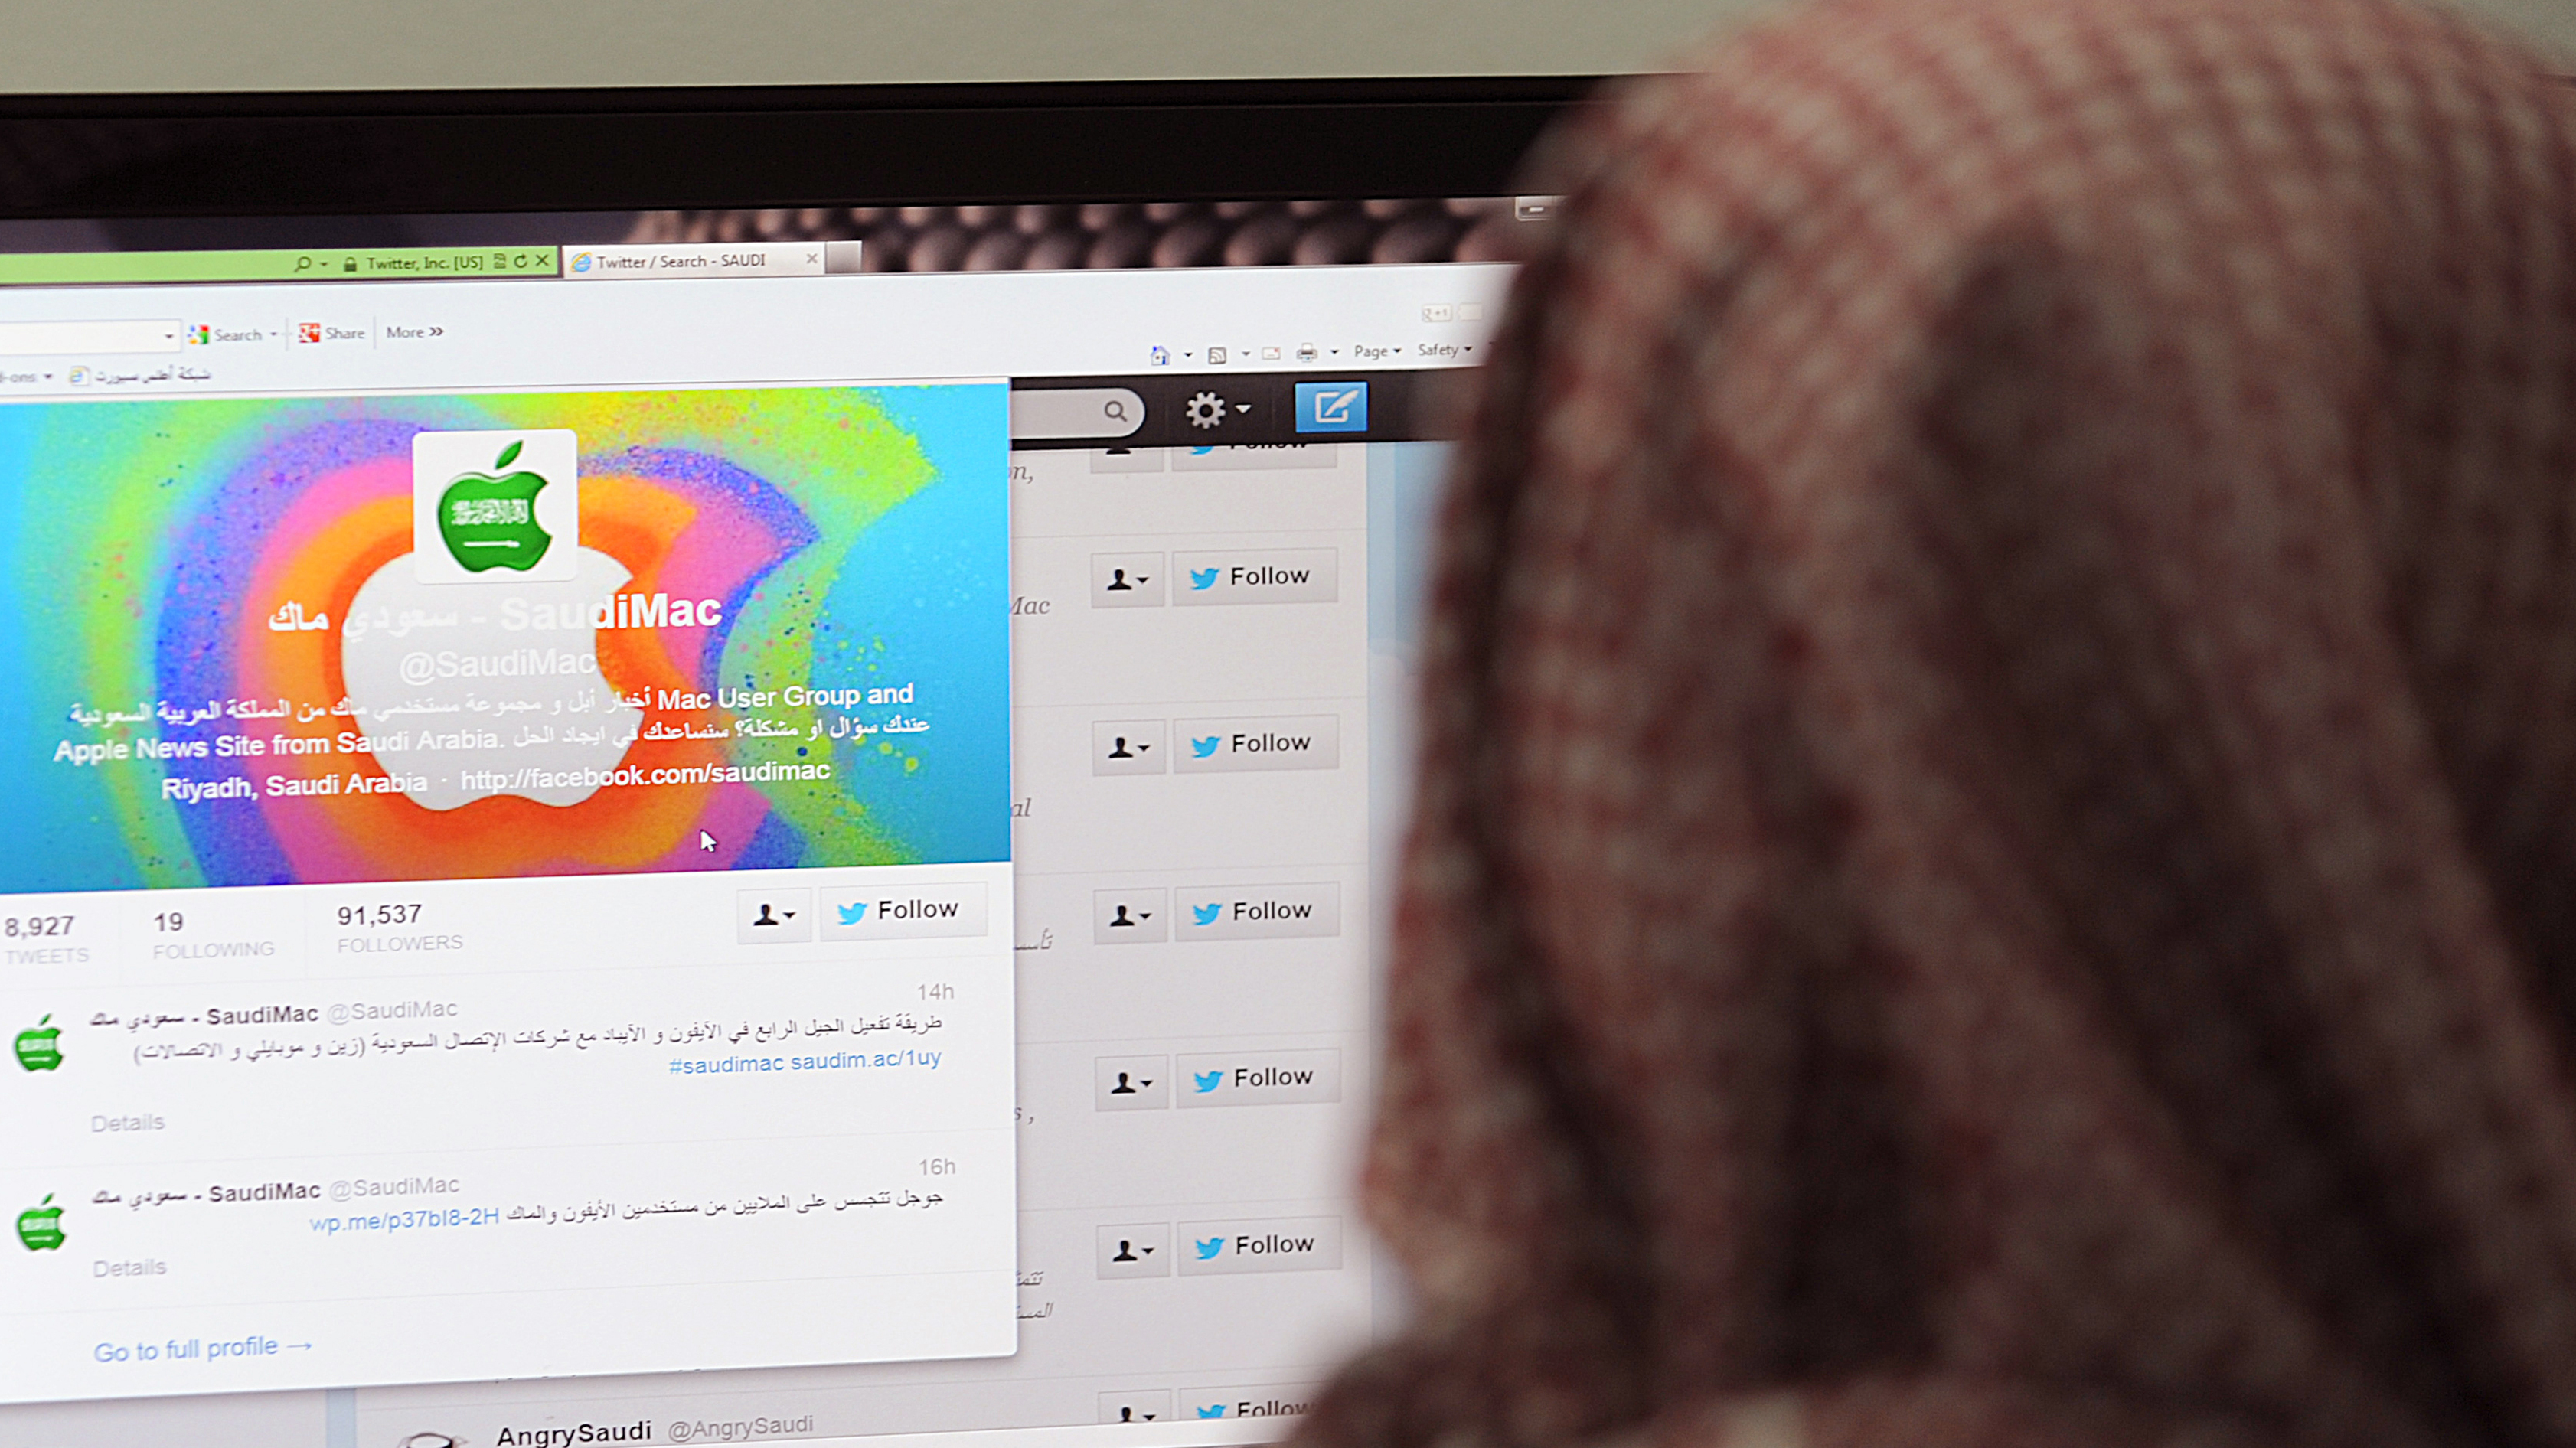 Twitter Users Risk Damnation, Saudi Religious Police Say